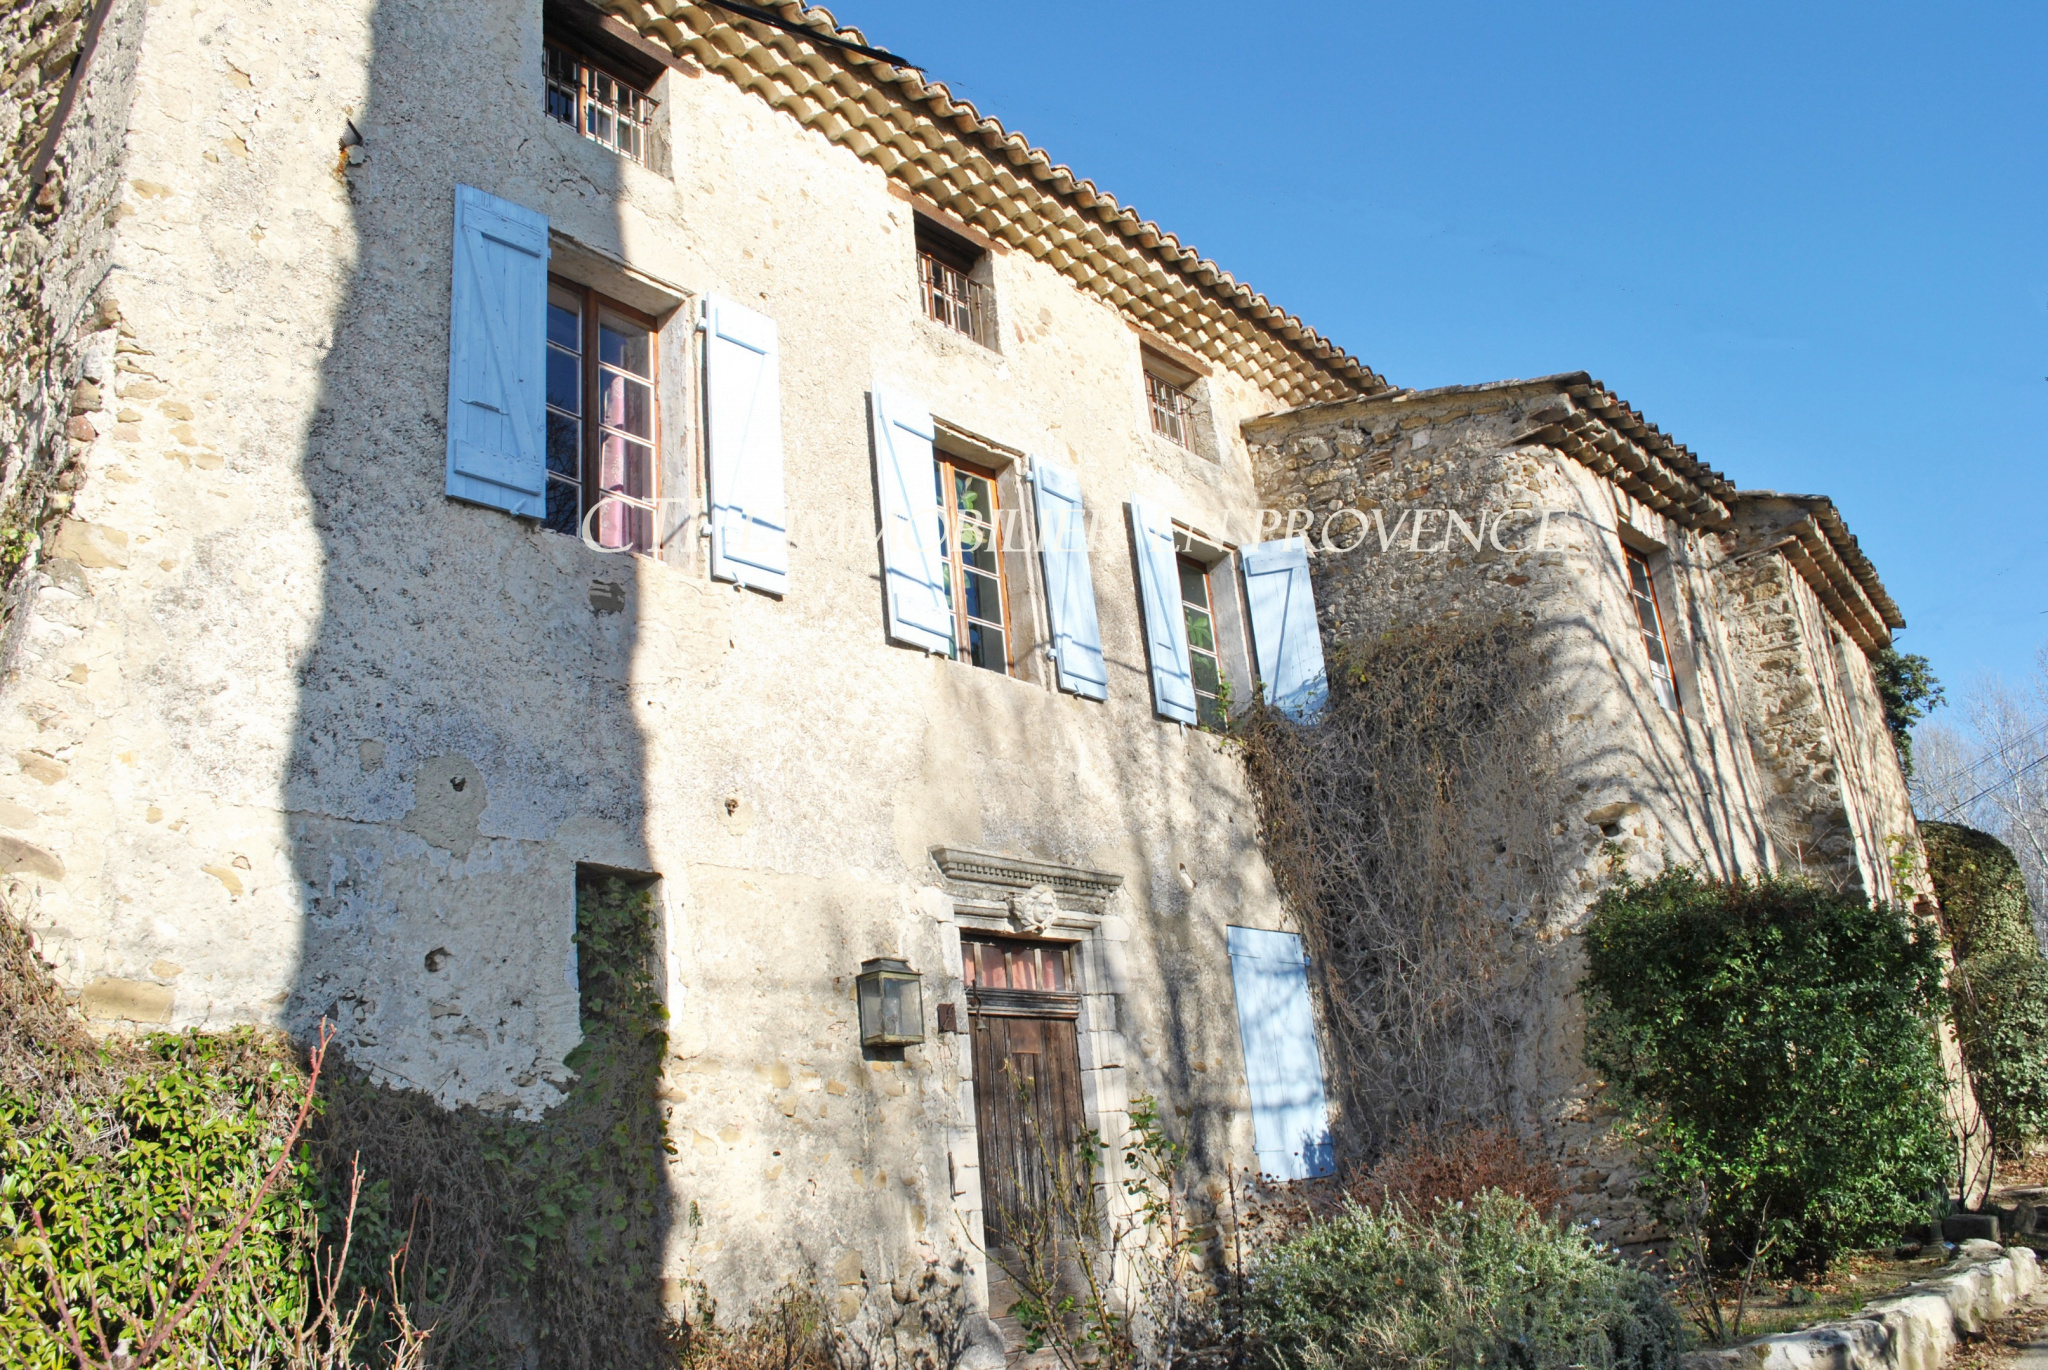 In the countryside of Vaison-La-Romaine